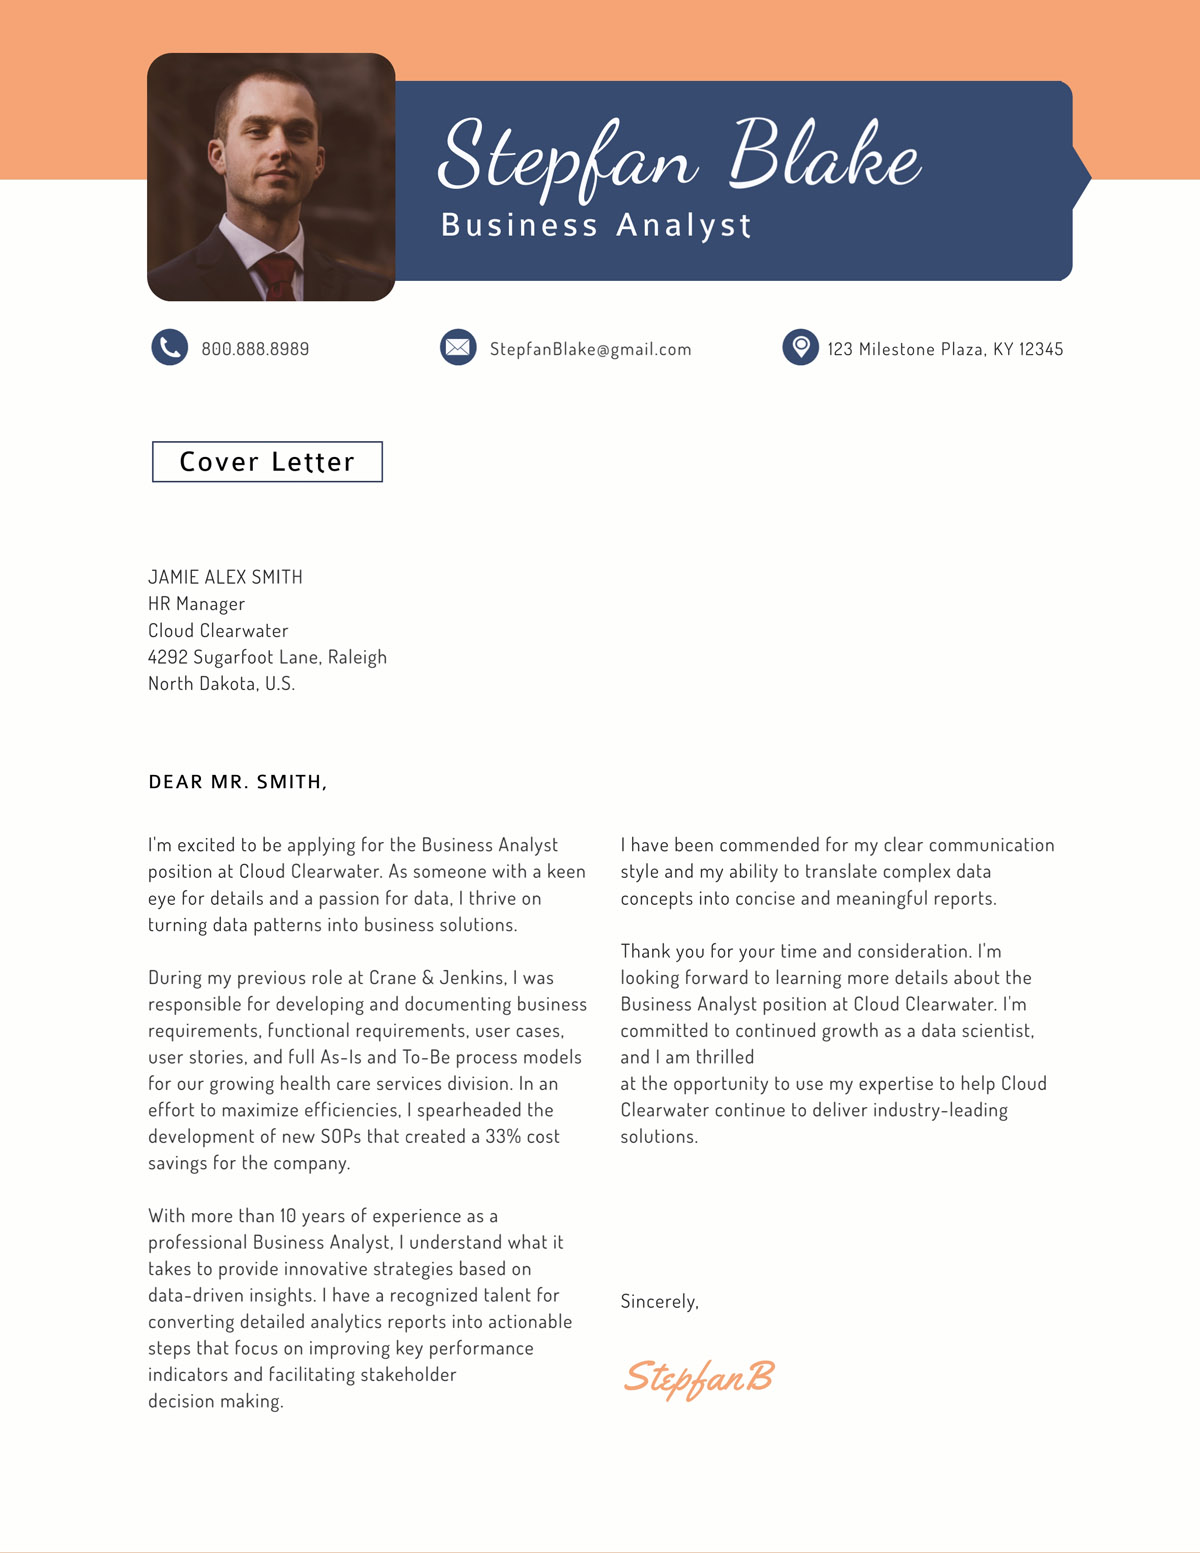 business analyst cover letter template